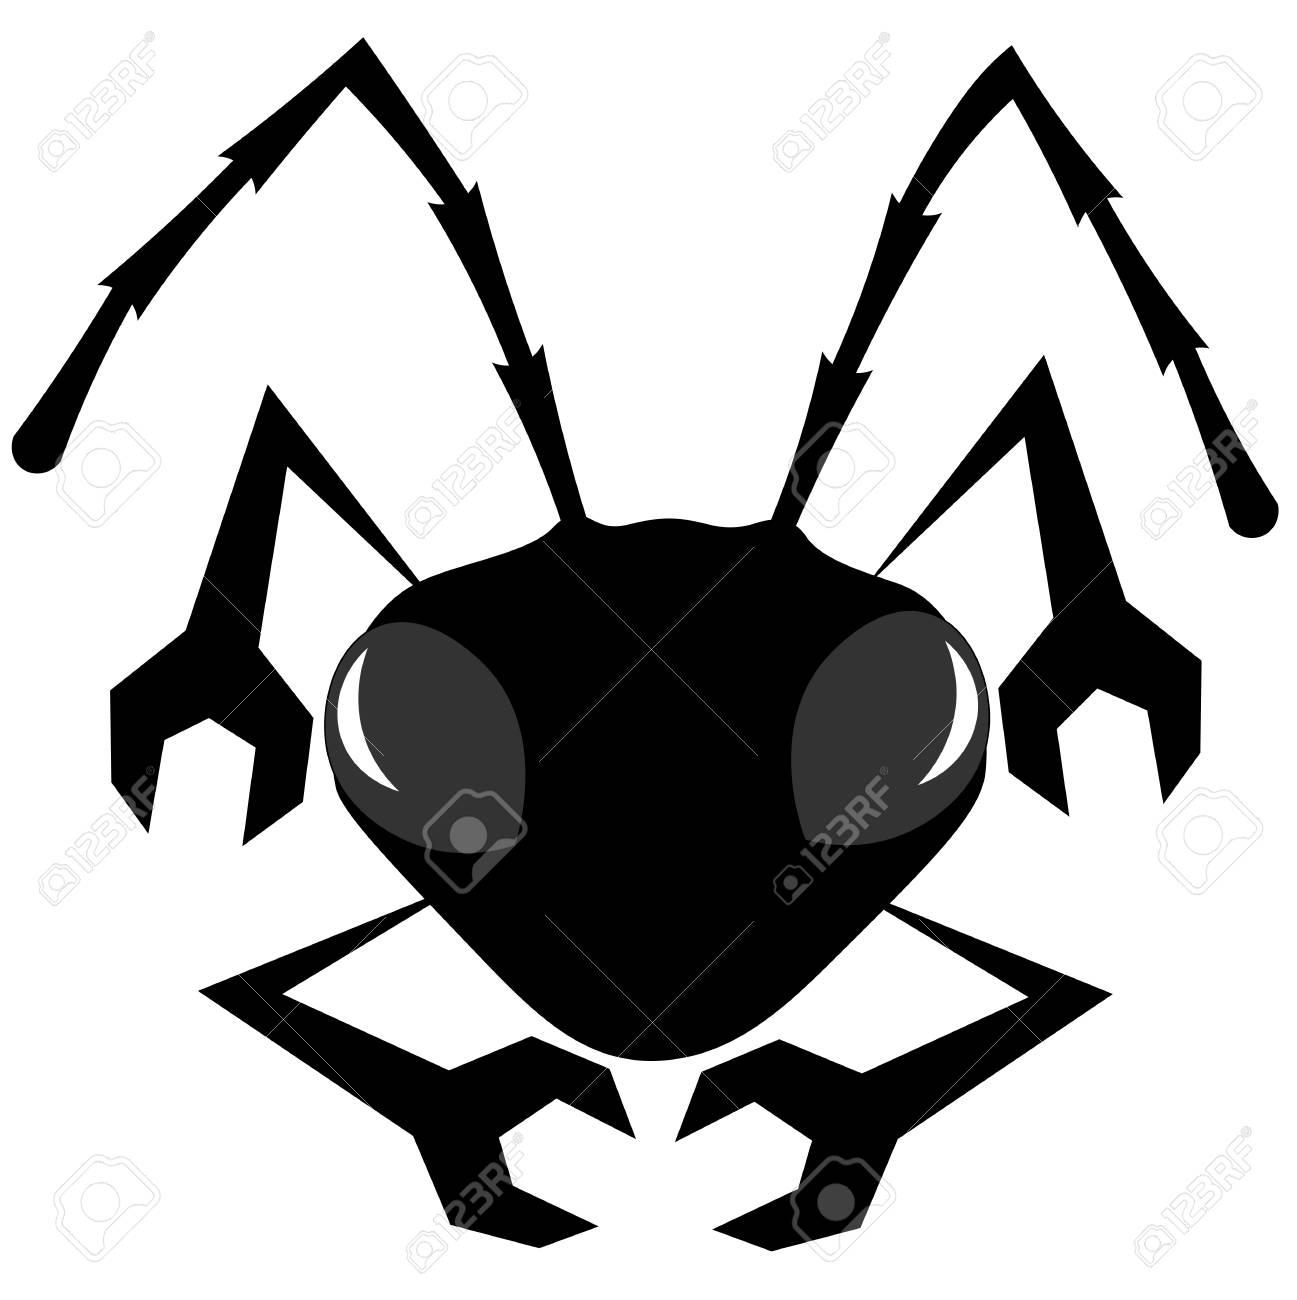 silhouette with paws in the form of a wrench an ant minimalist